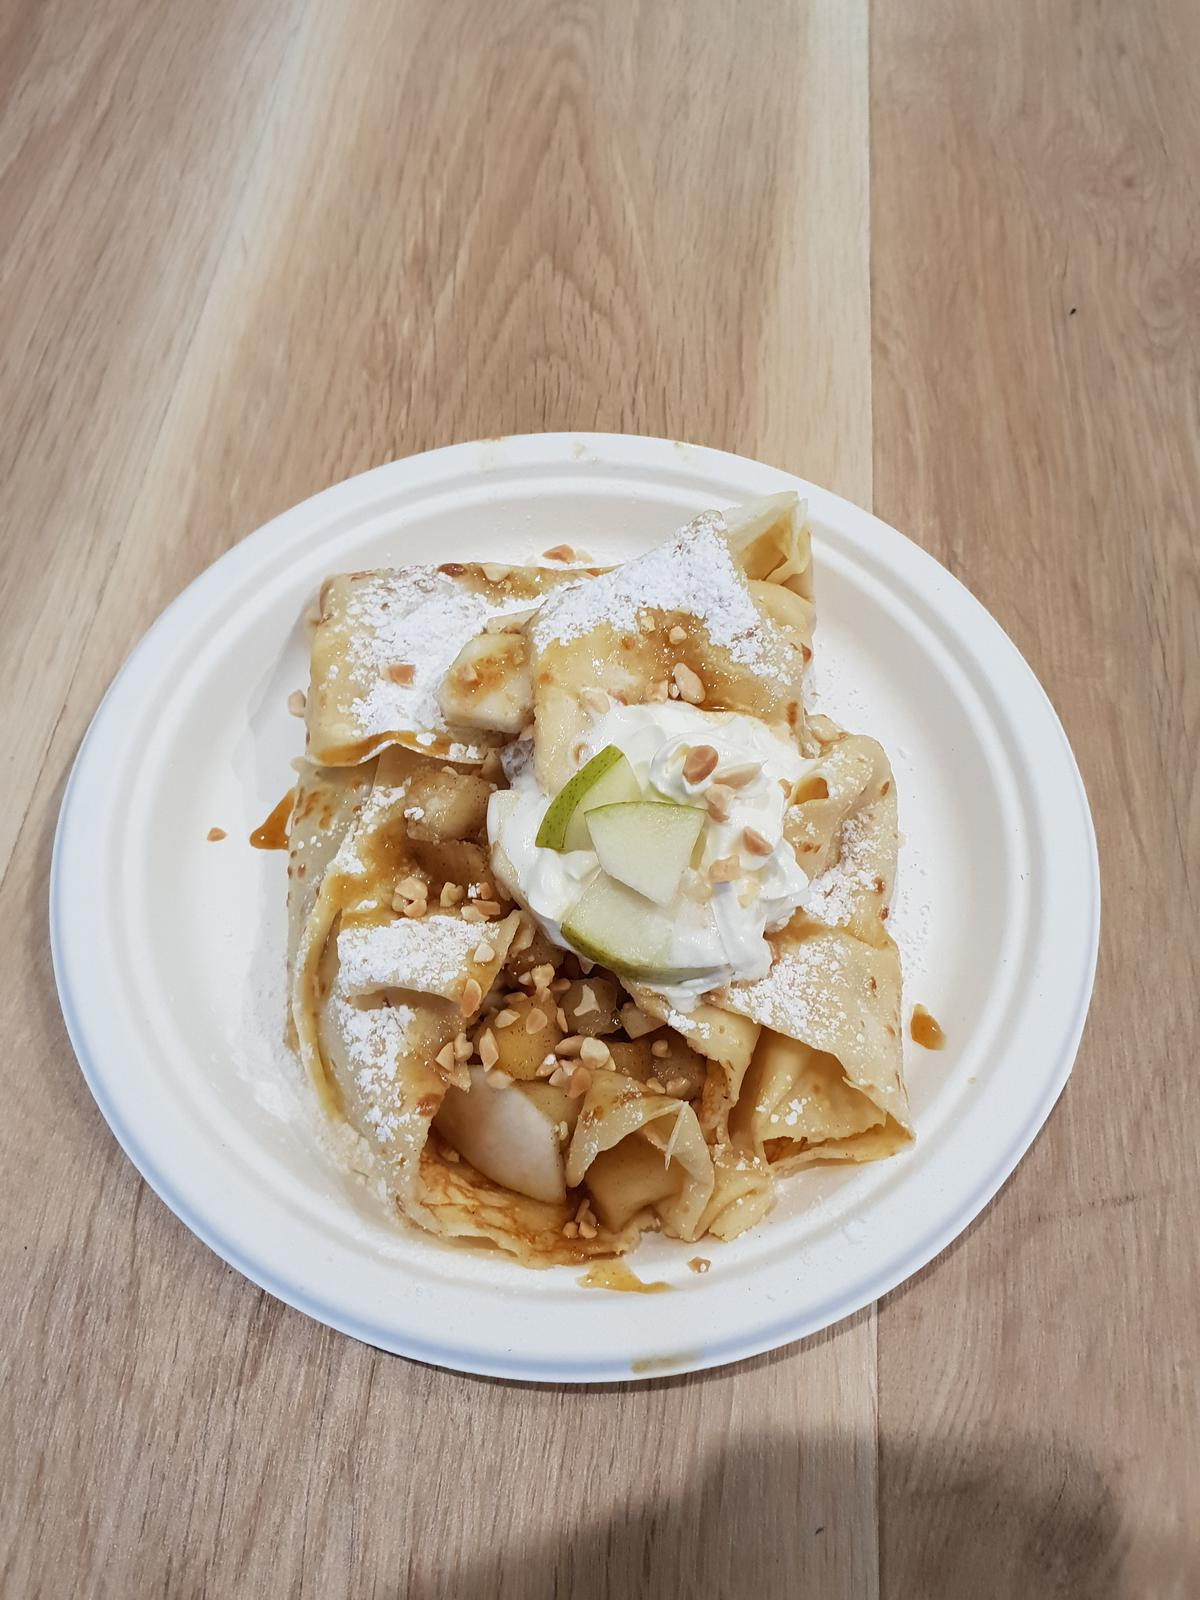 Apple Pear Crepe